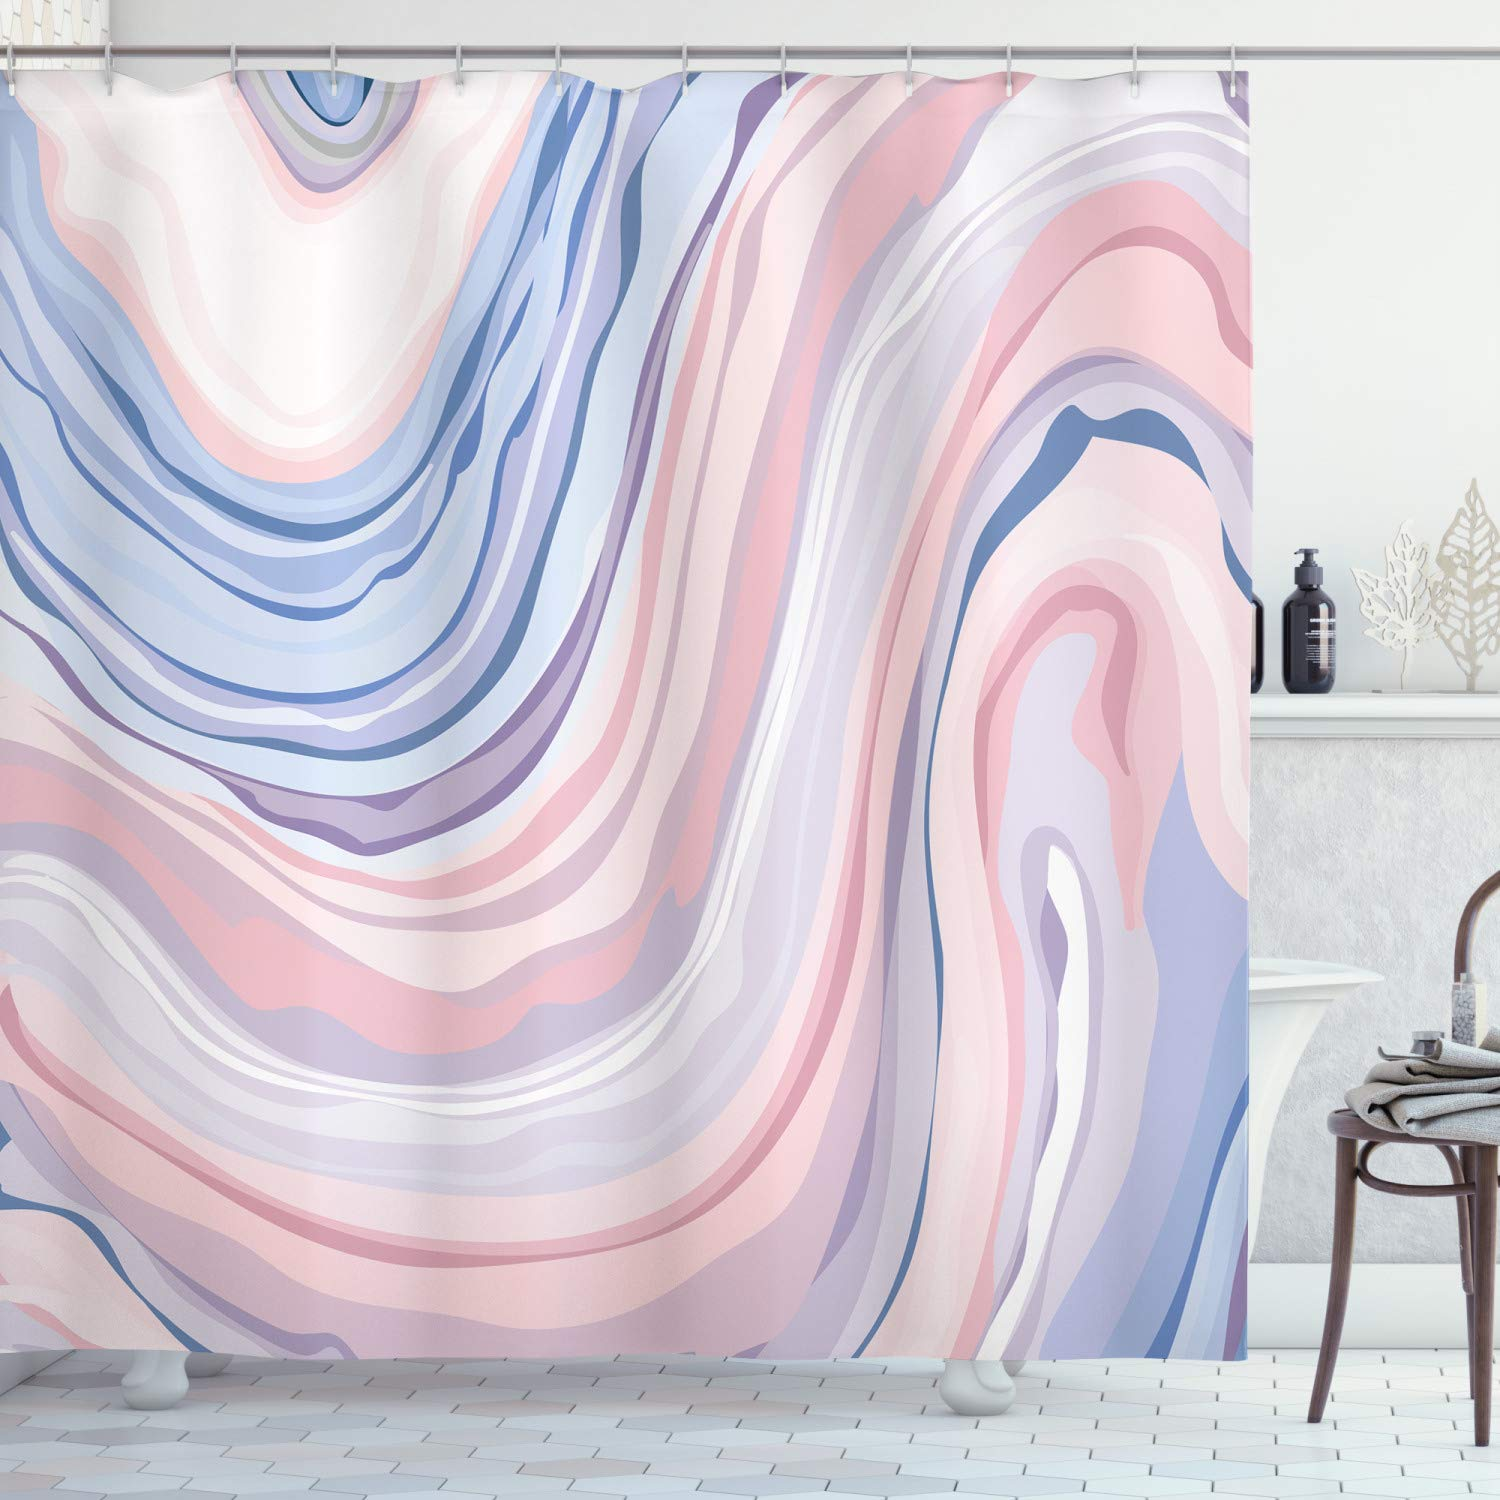 Apartment Decor Shower Curtain by Ambesonne, Abstract Pastel Tones in Motion Quartz Crystal Mineral Inspired Picture, Fabric Bathroom Decor Set with Hooks, 75 Inches Long, Pink Blue